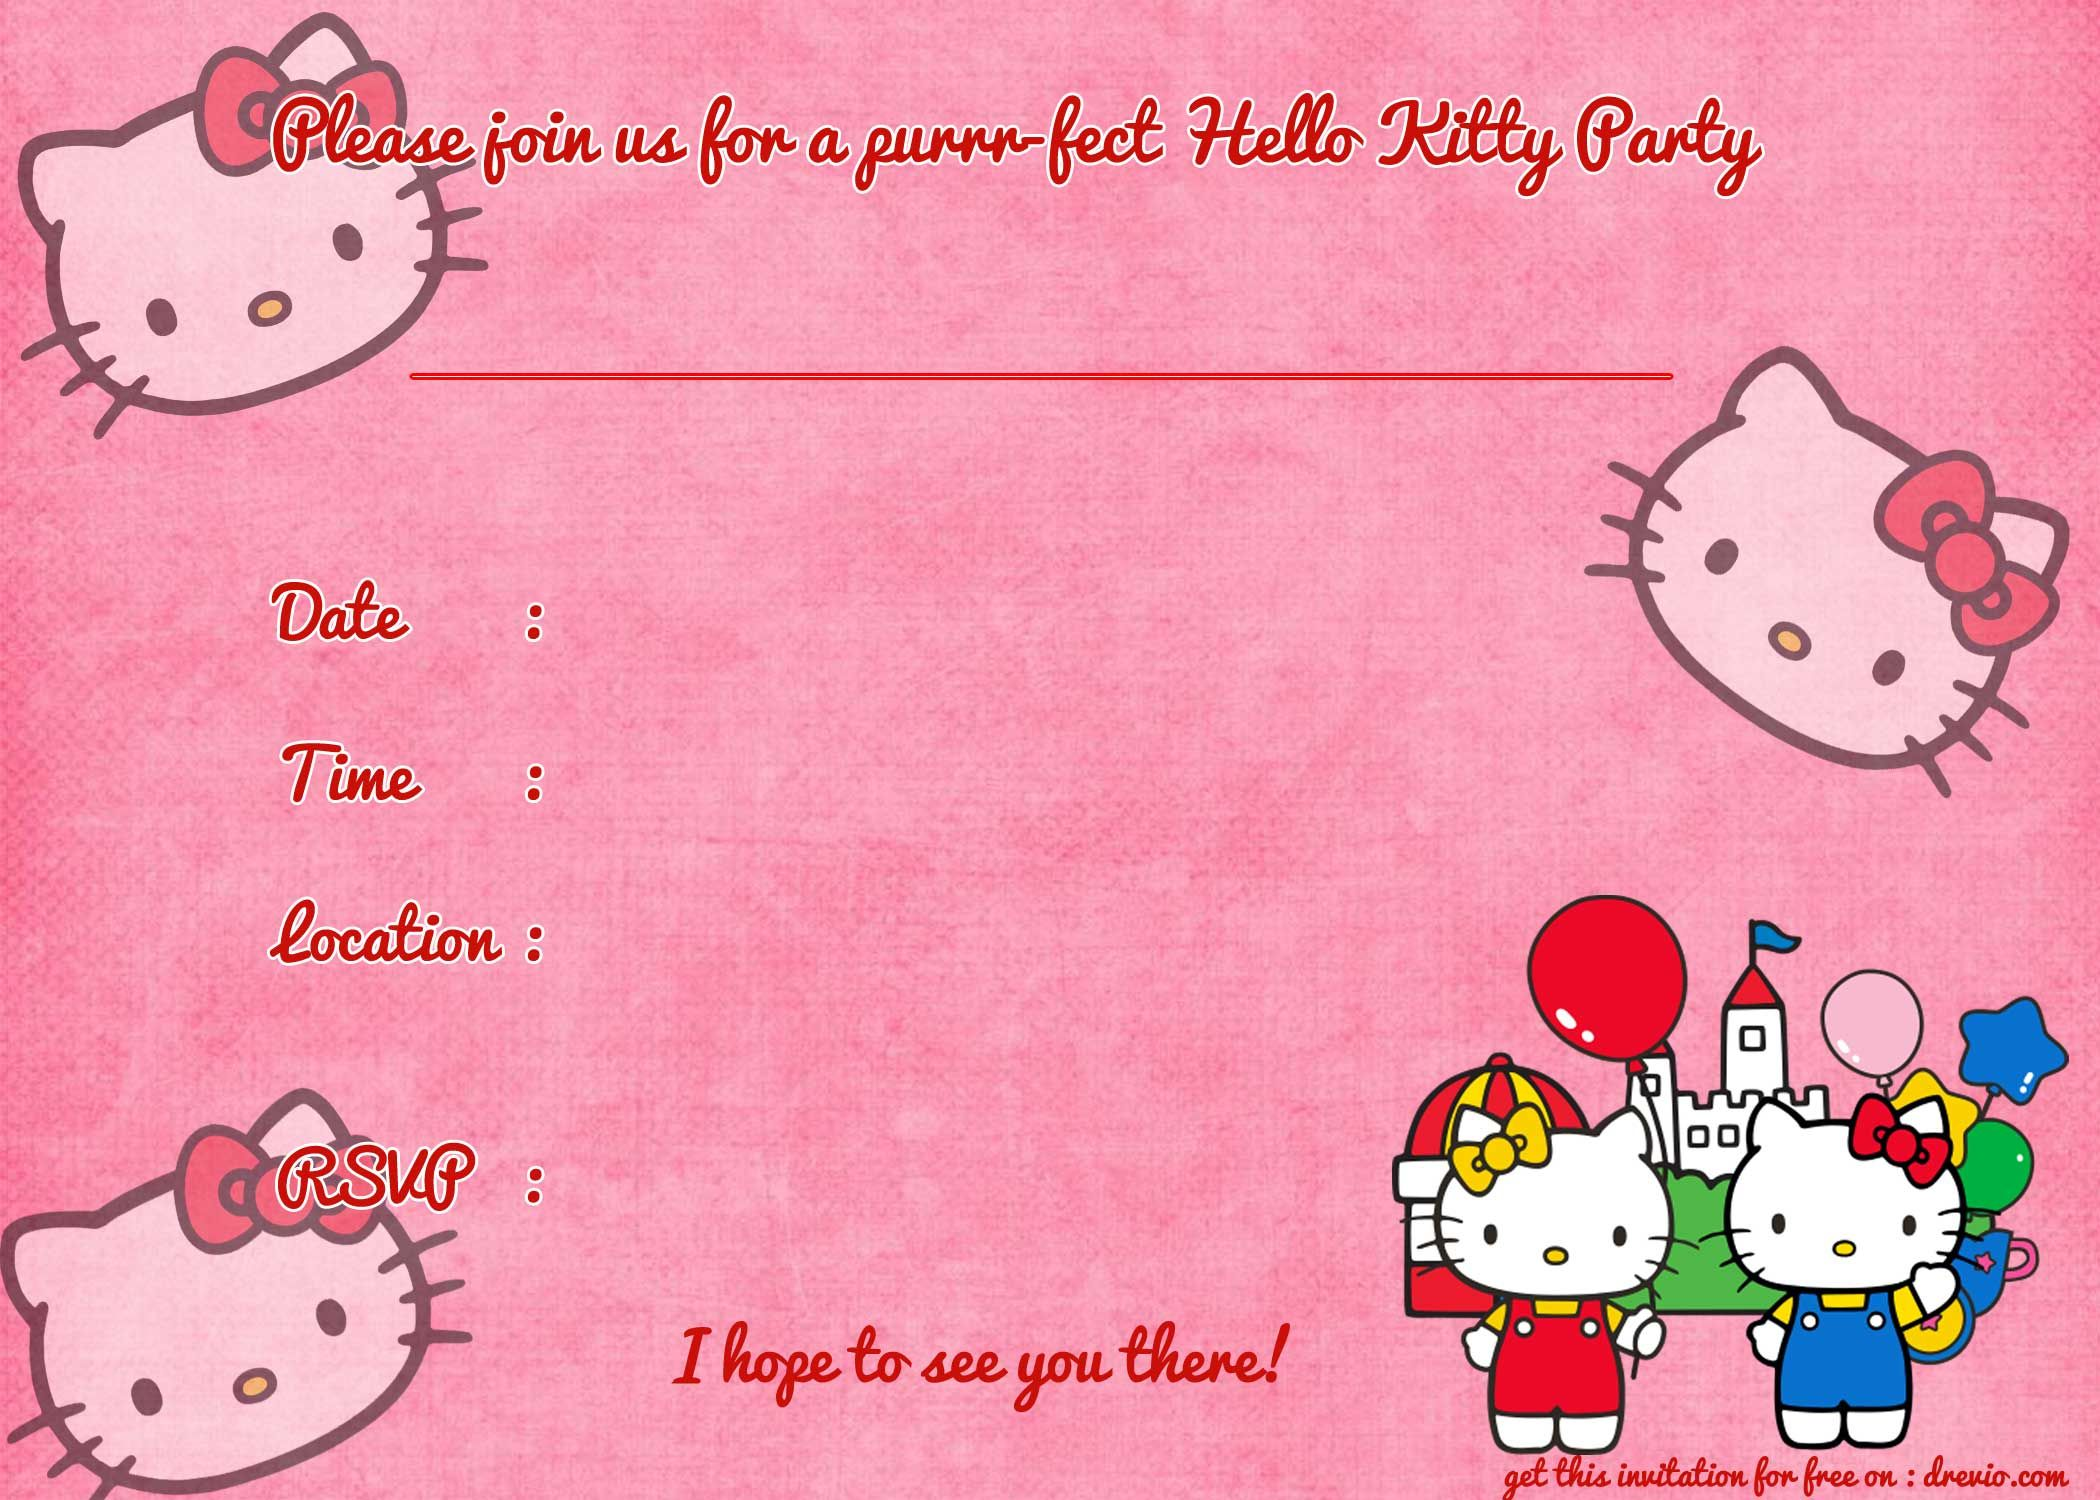 printablehellokittybirthdayinvitationtemplate Birthday